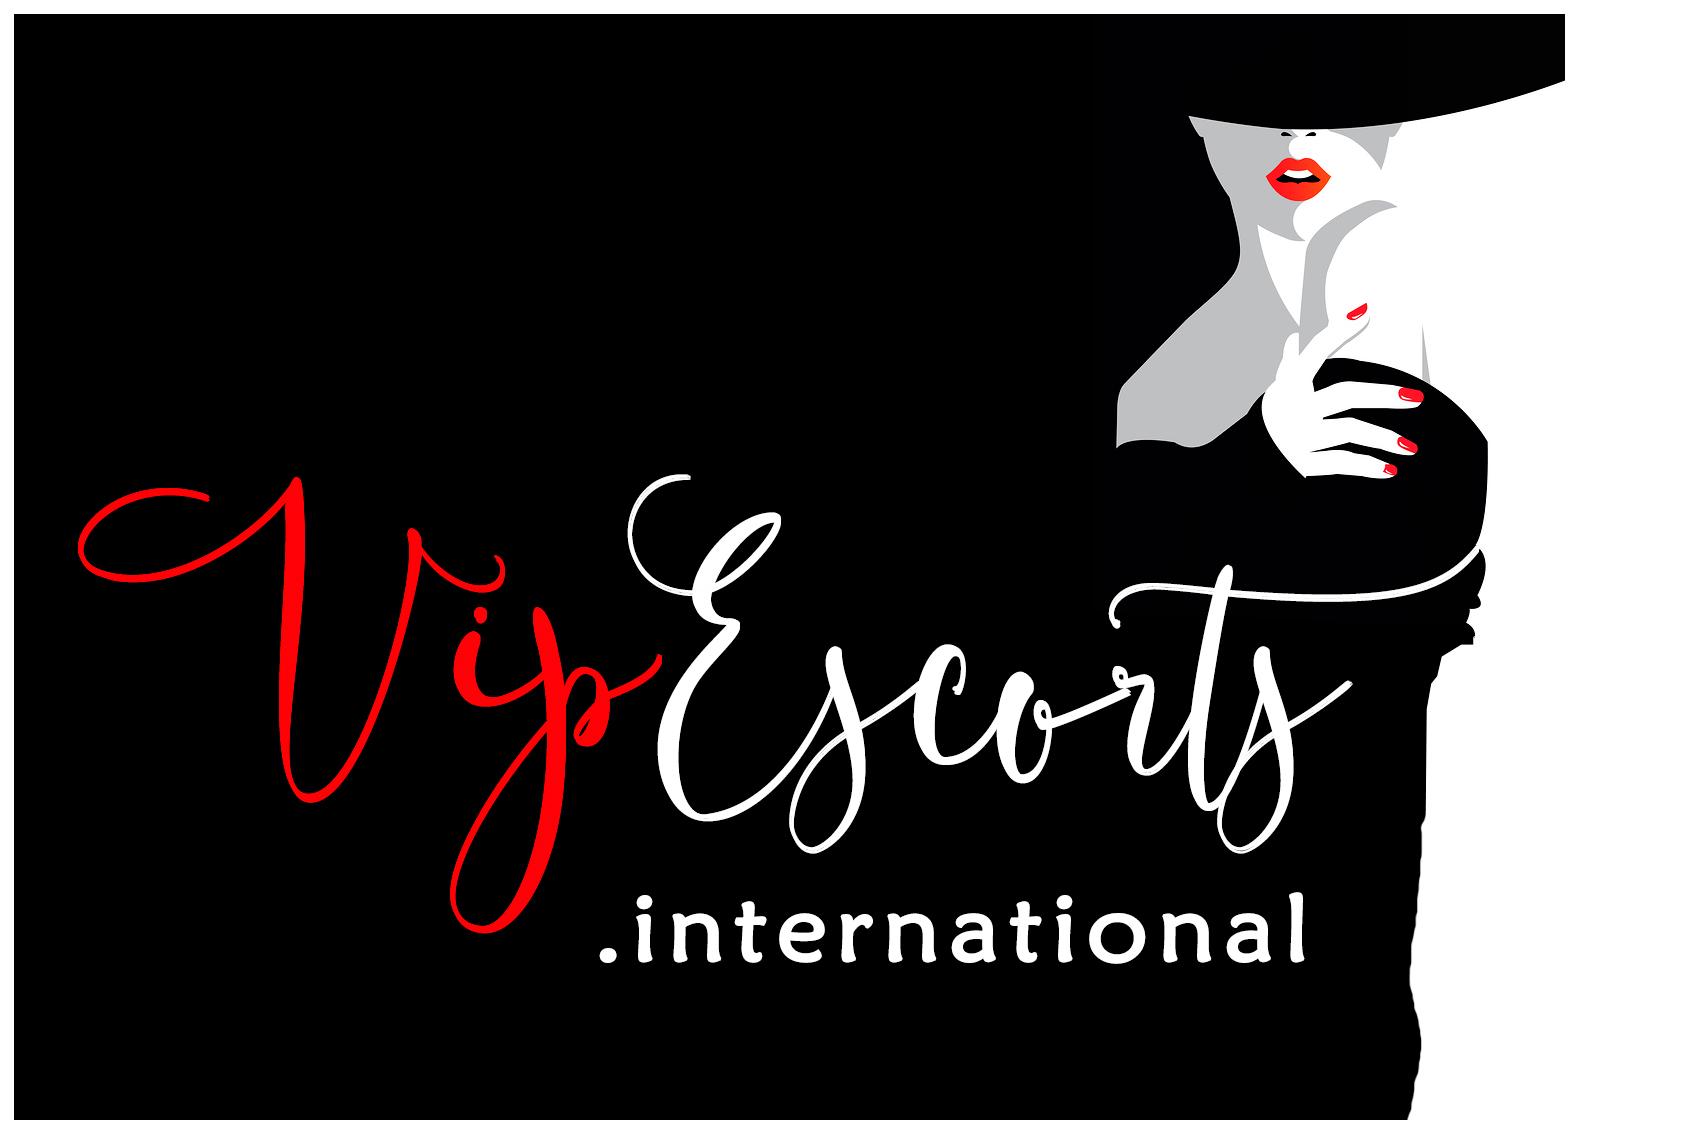 International independent VIP Escorts and Agencies | VipEscorts.international